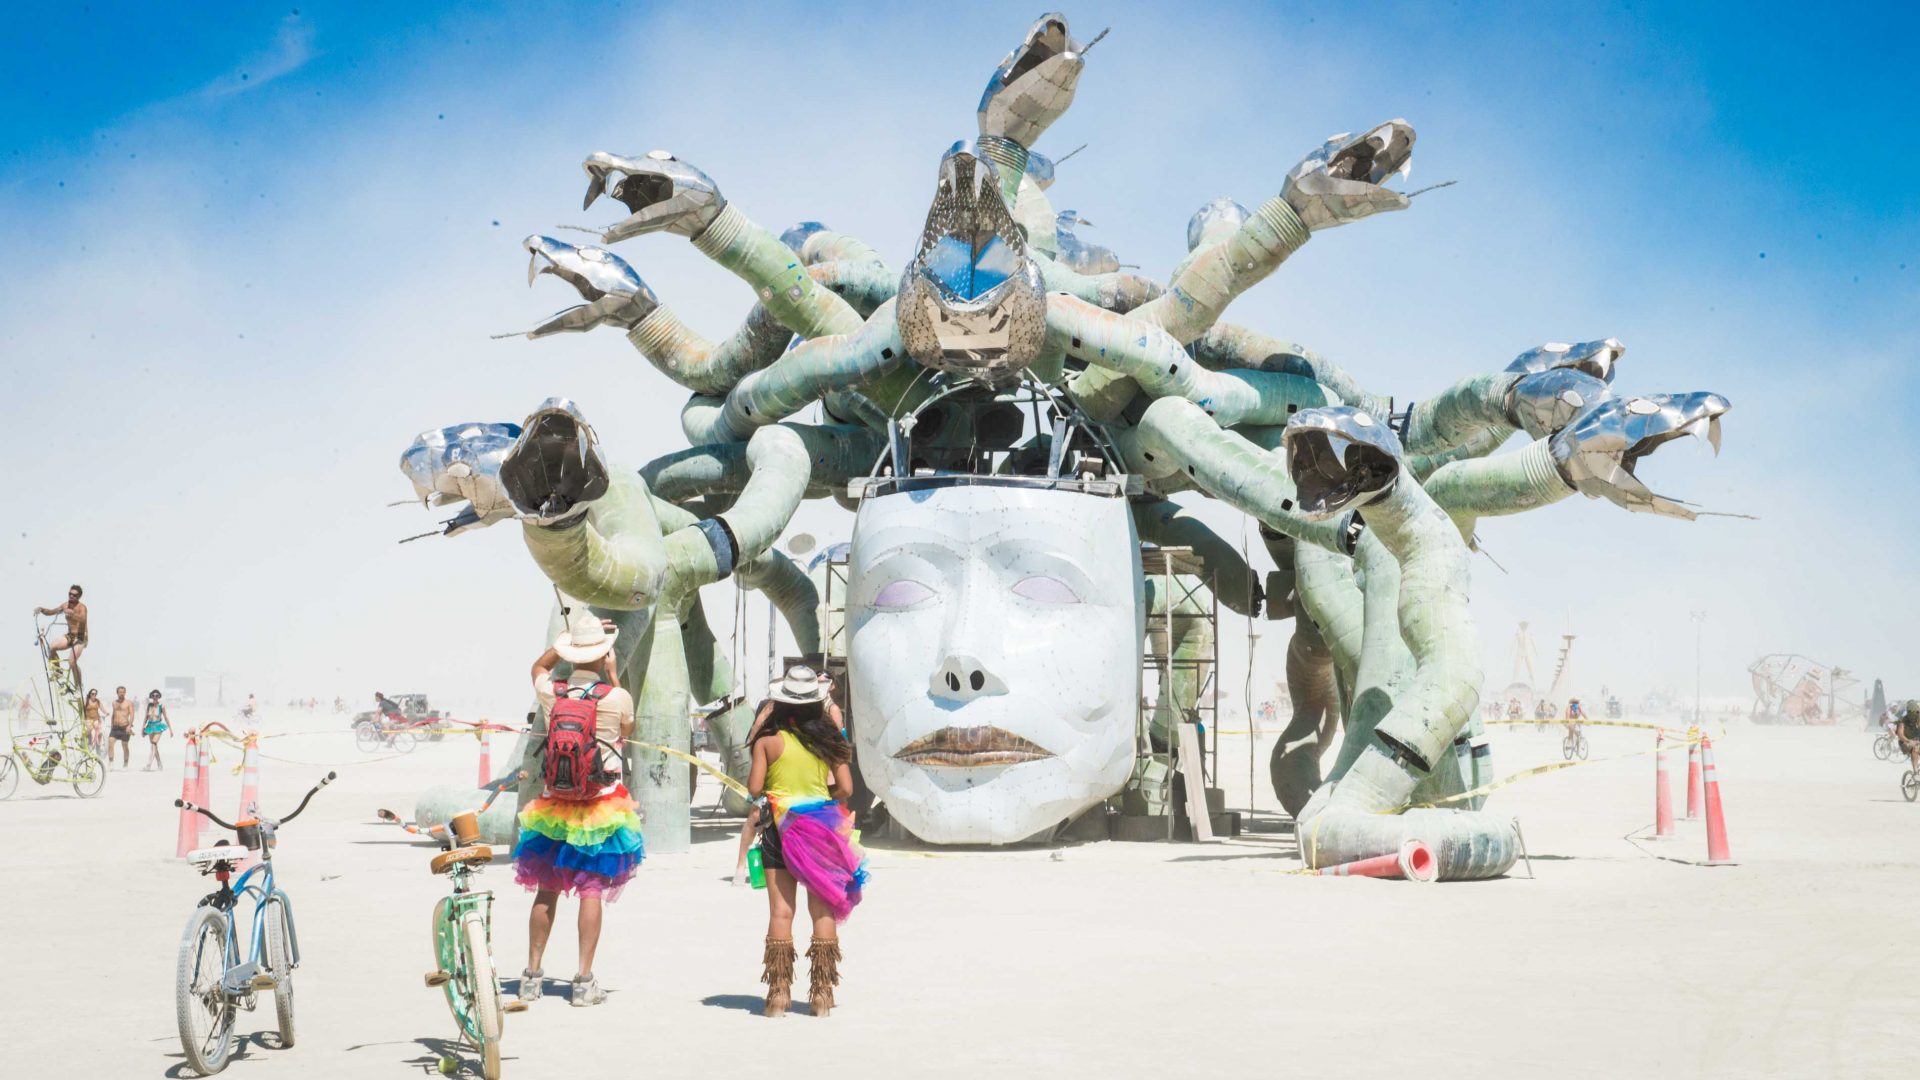 A couple in rainbow tutus admire an art installation at Burning Man.